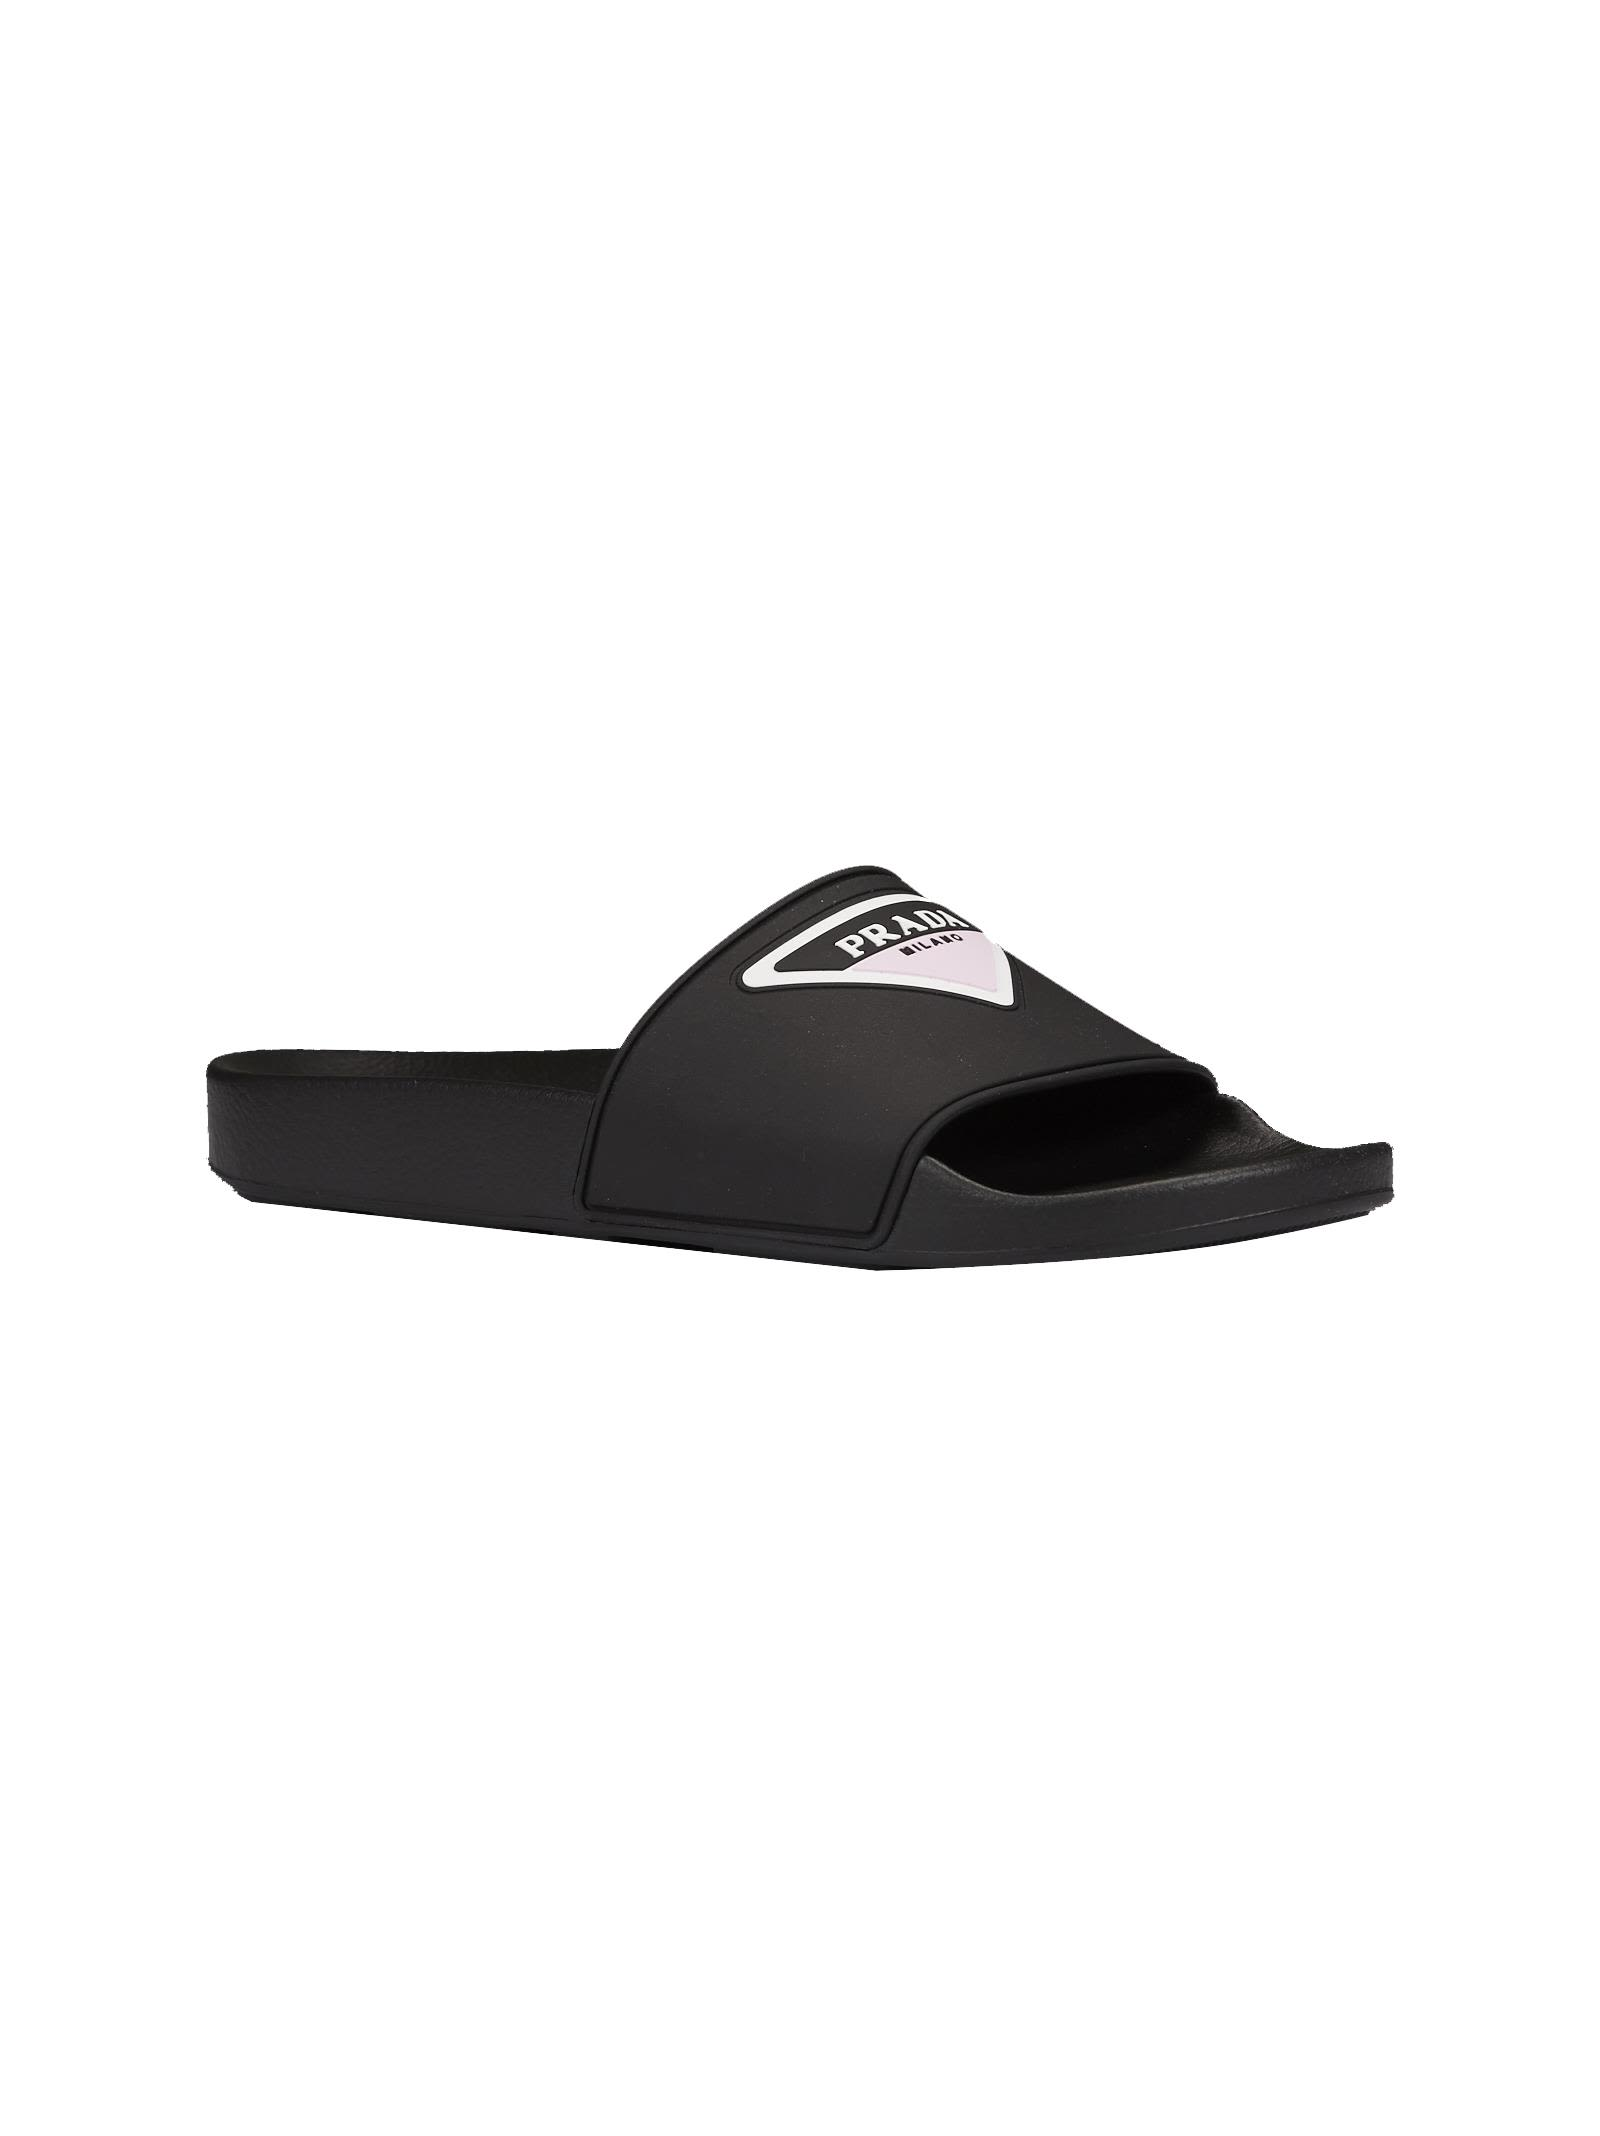 Prada Logo Print Sliders Stockist Online Inexpensive Cheap Price Free Shipping Collections Clearance Get Authentic ON5gLSD